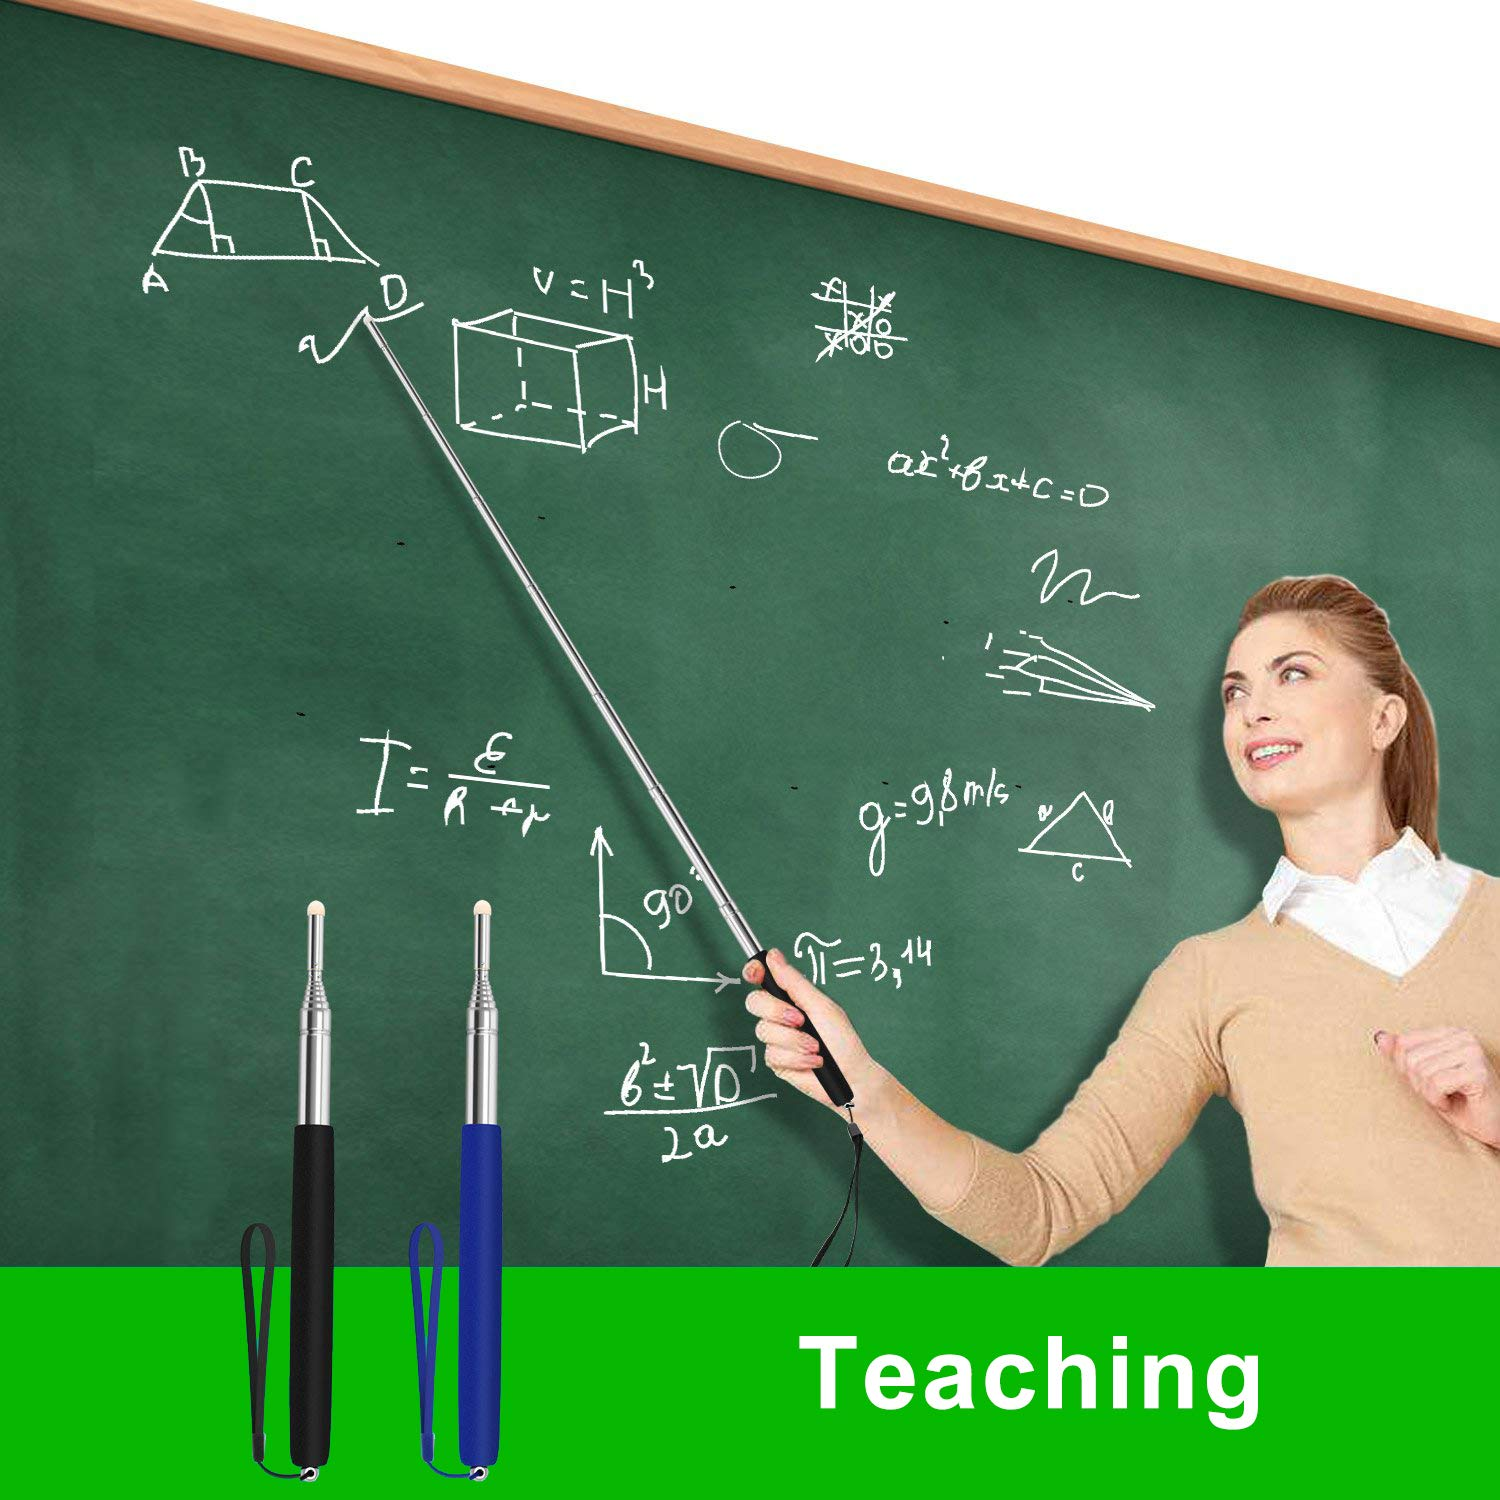 Telescoping Teachers Pointer Retractable Classroom Electronic Whiteboard Presentation Teaching Pointer Stick for Teachers Coach Presenter with A Lanyard and Felt Nib Extends to 39 inches